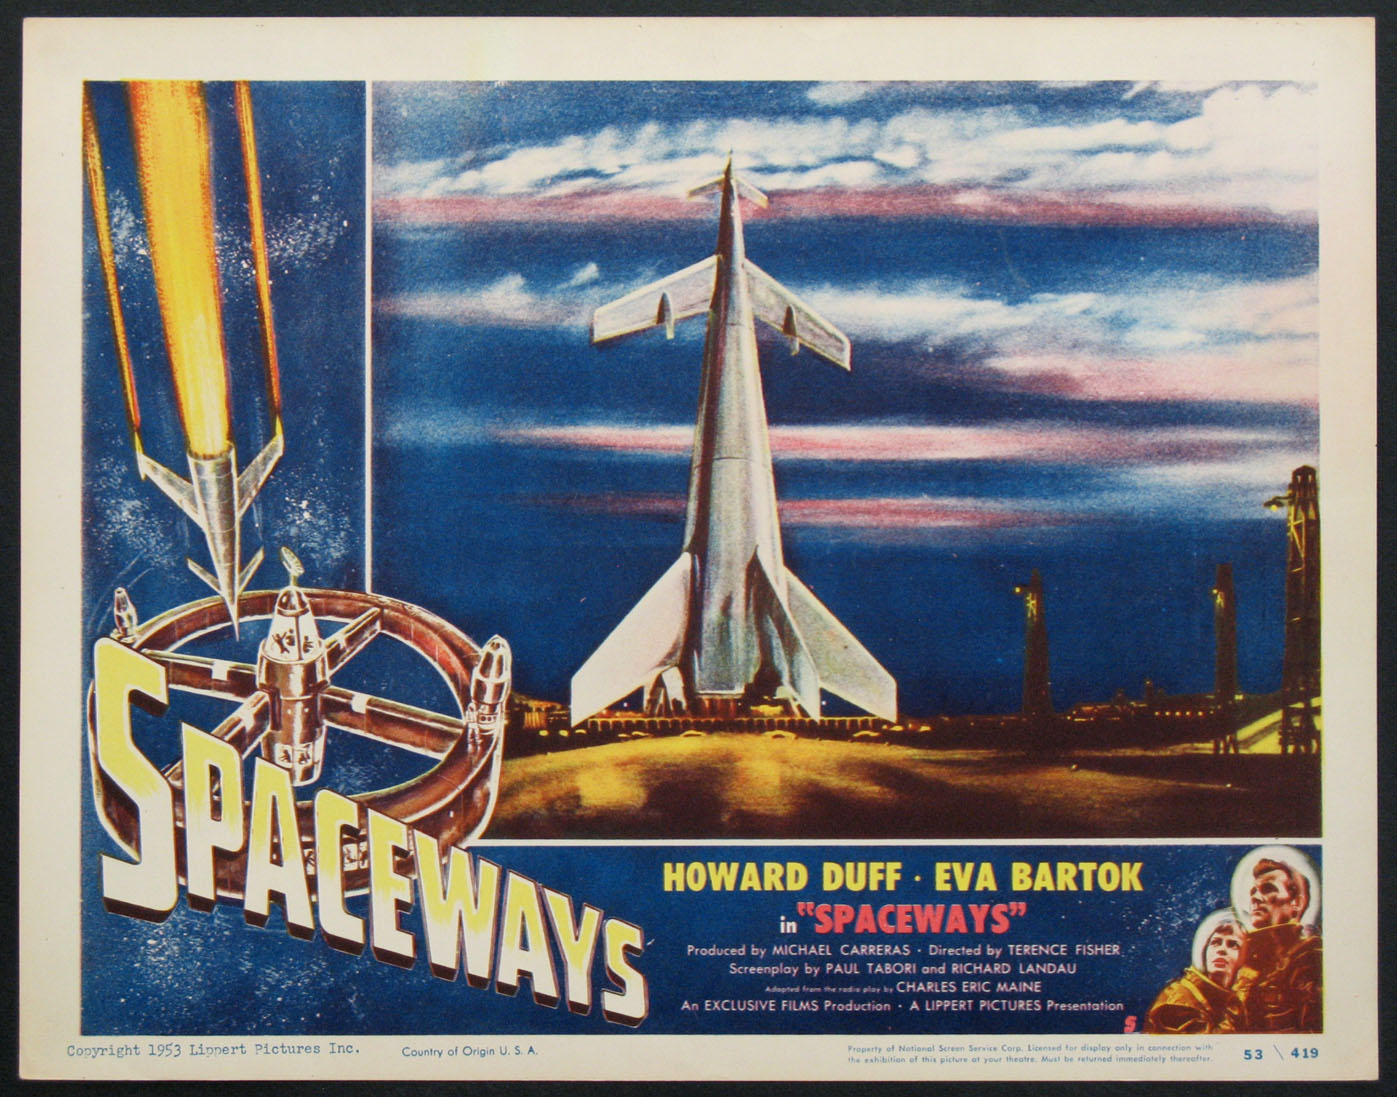 SPACEWAYS @ FilmPosters.com